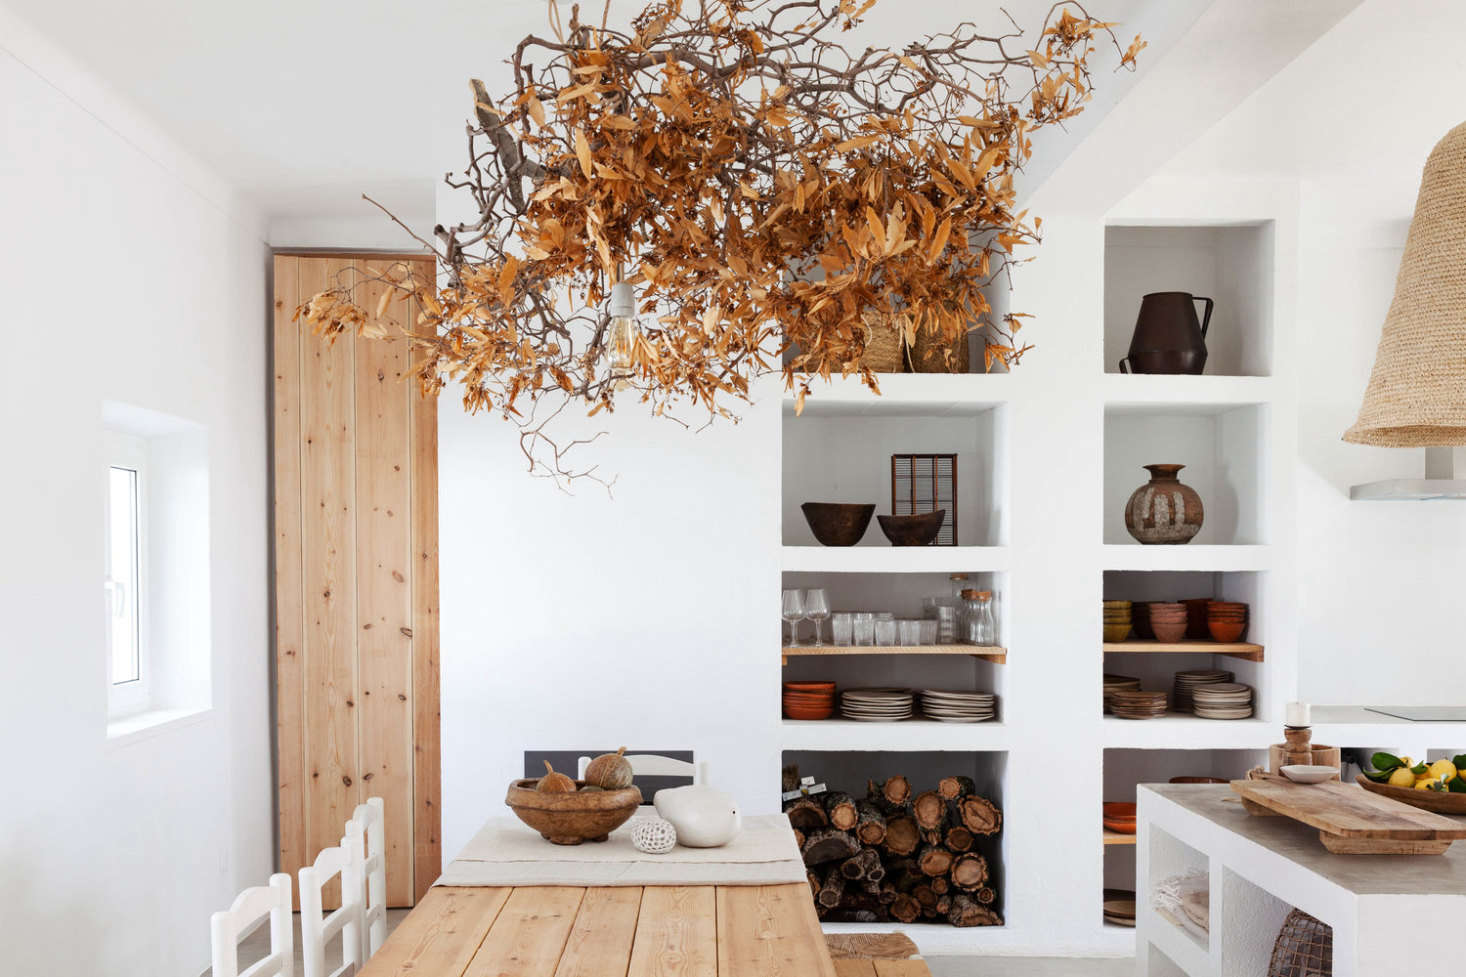 The guest house kitchen, with sculptural white shelves, a wood-plank table, and a tangle of dried leaves hung above. (For a similar autumnal look, see Bringing in the Sheaves: Harvest Table Inspiration from Caro of Somerset.)